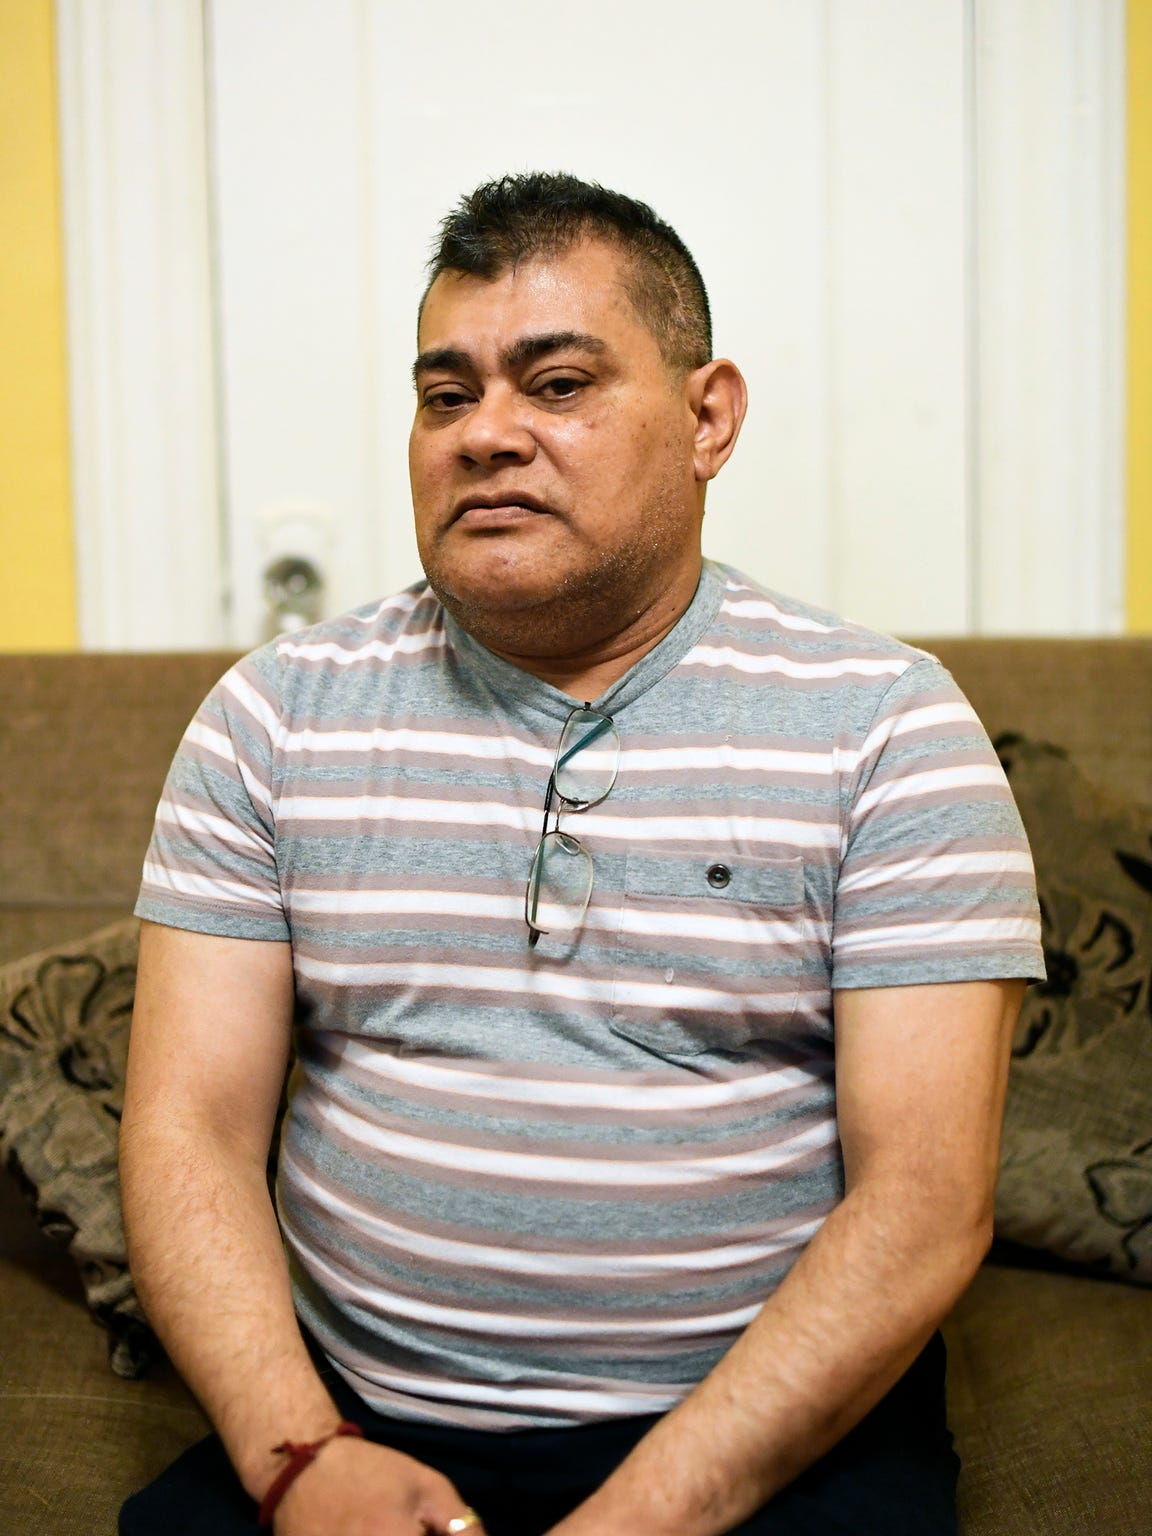 Ricardo Aviles, an immigrant from Honduras, has worked as an elevator operator in Jersey City for 17 years thanks to a work permit under the Temporary Protected Status (TPS). Photographed in Jersey City, NJ on Monday, June 11, 2018.